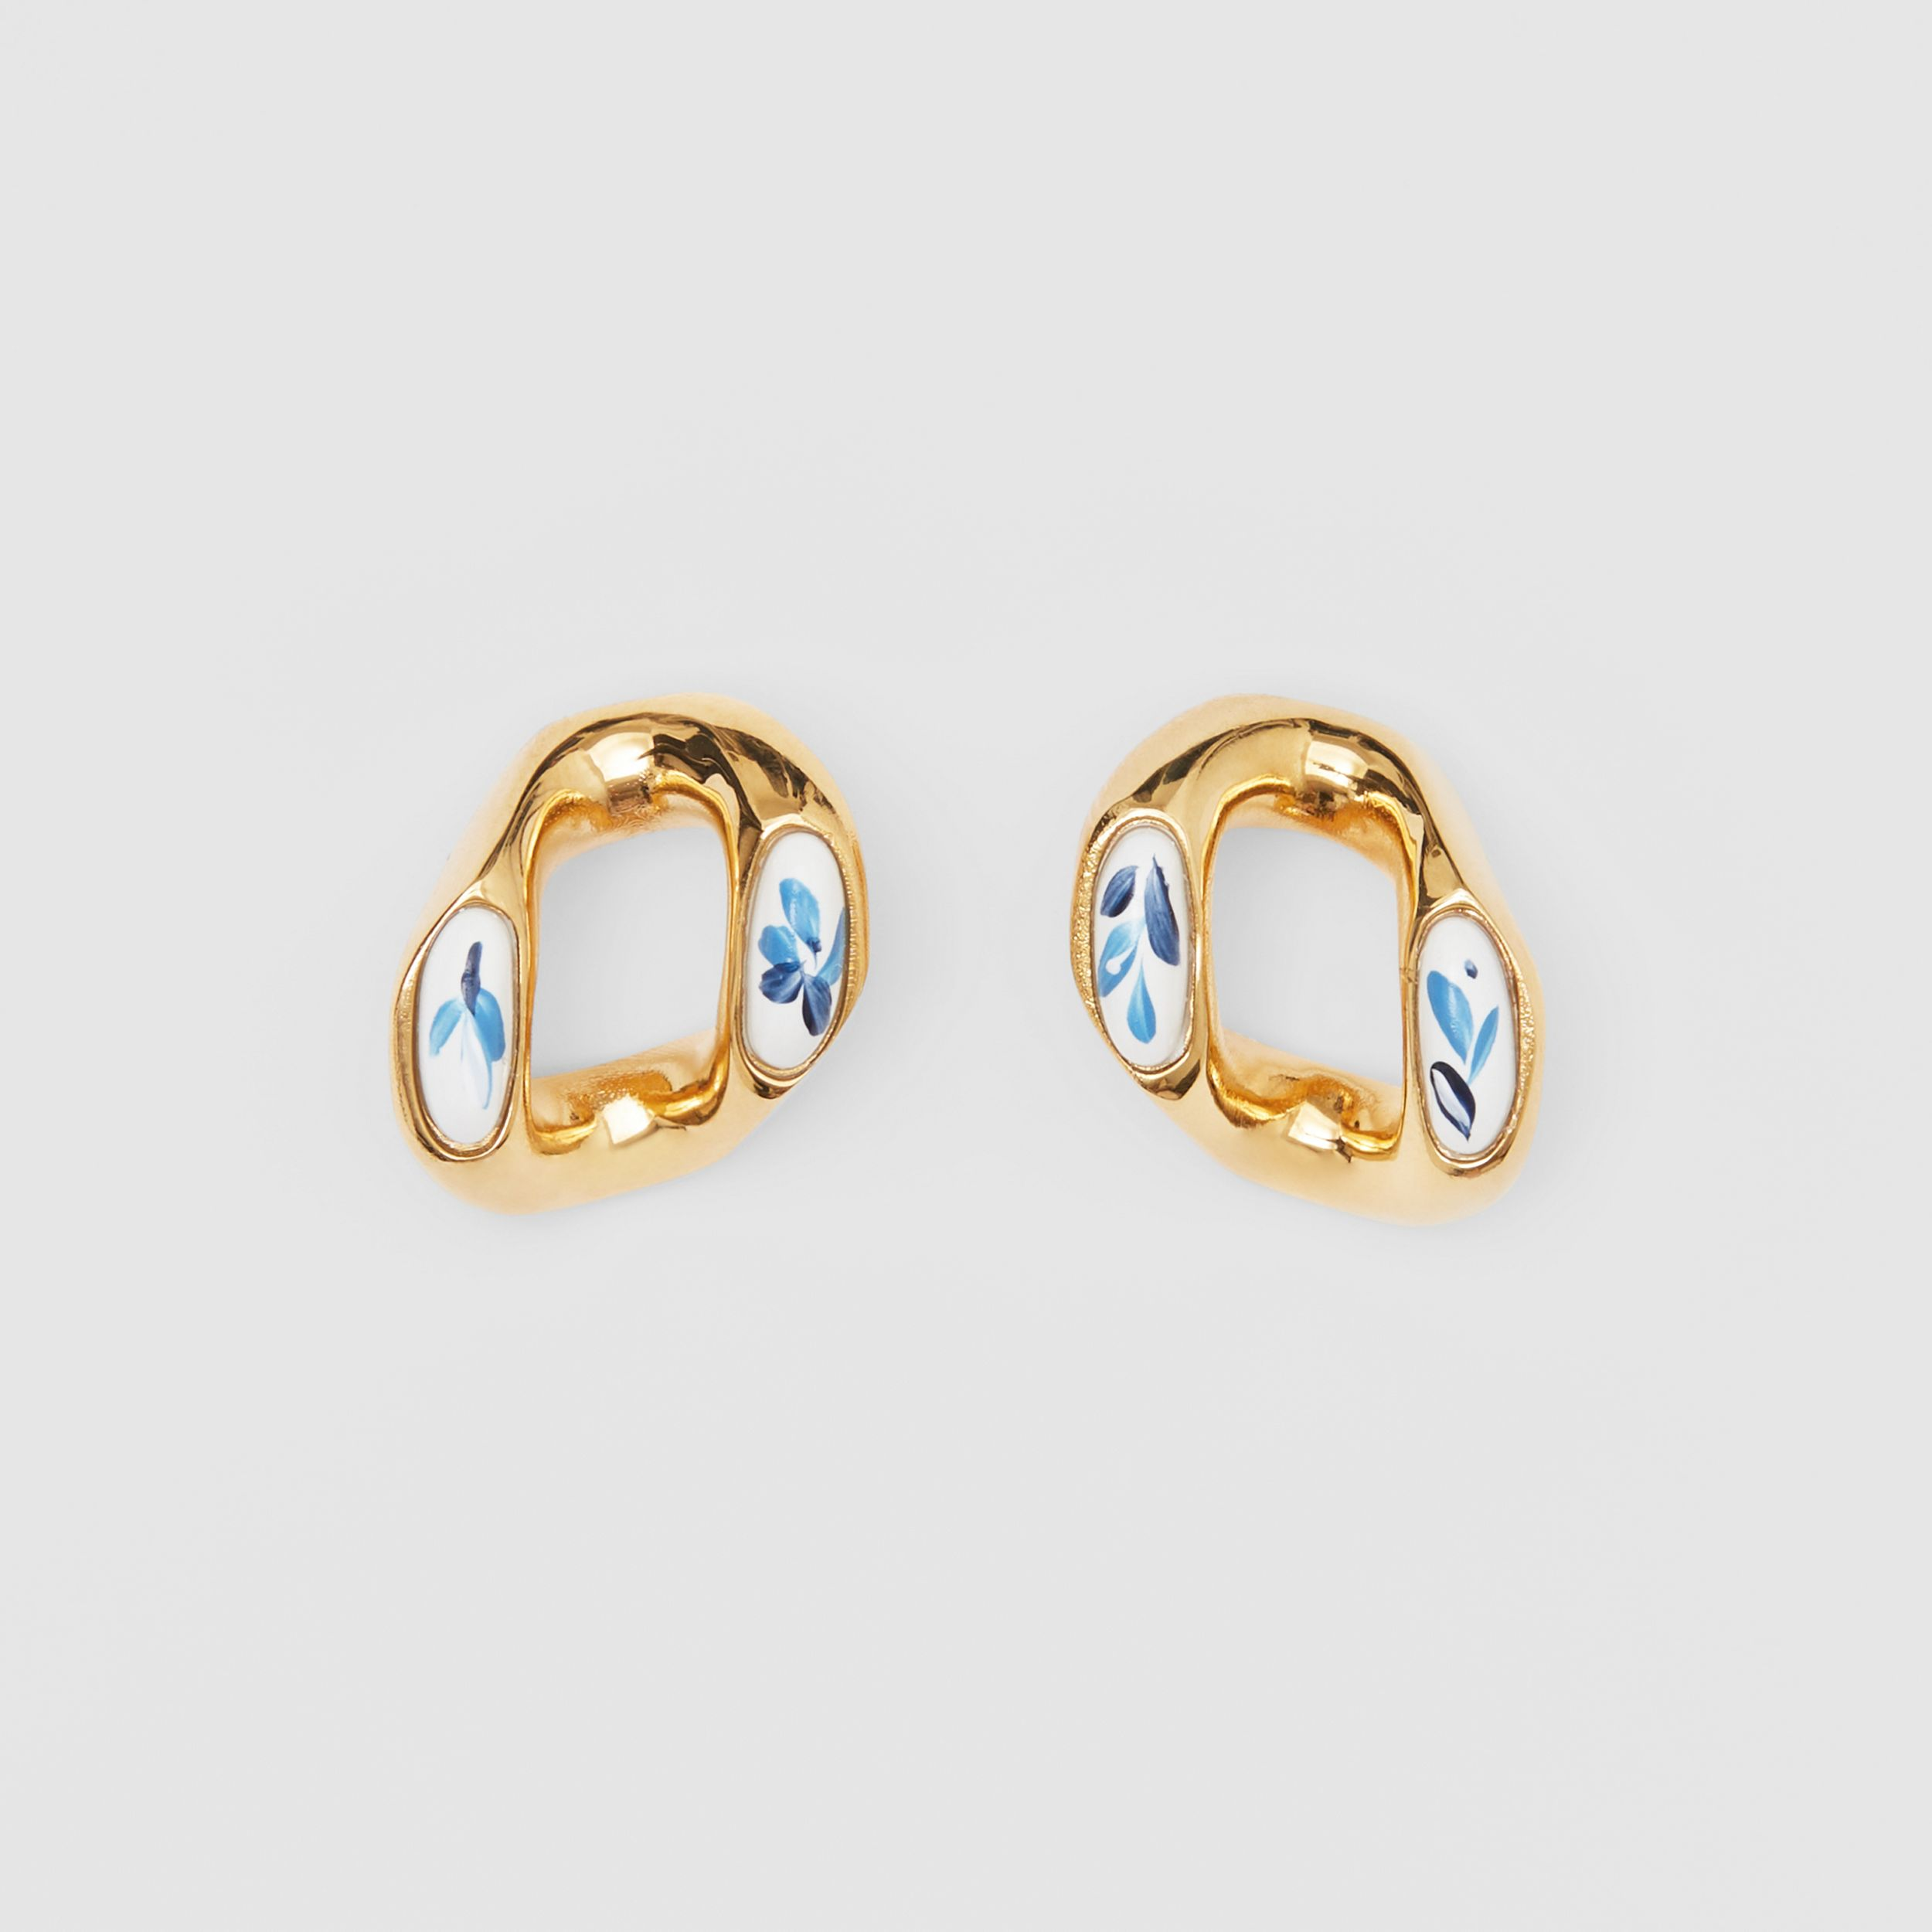 Enamel Detail Gold-plated Chain-link Earrings in Light Gold/white/blue - Women | Burberry - 1